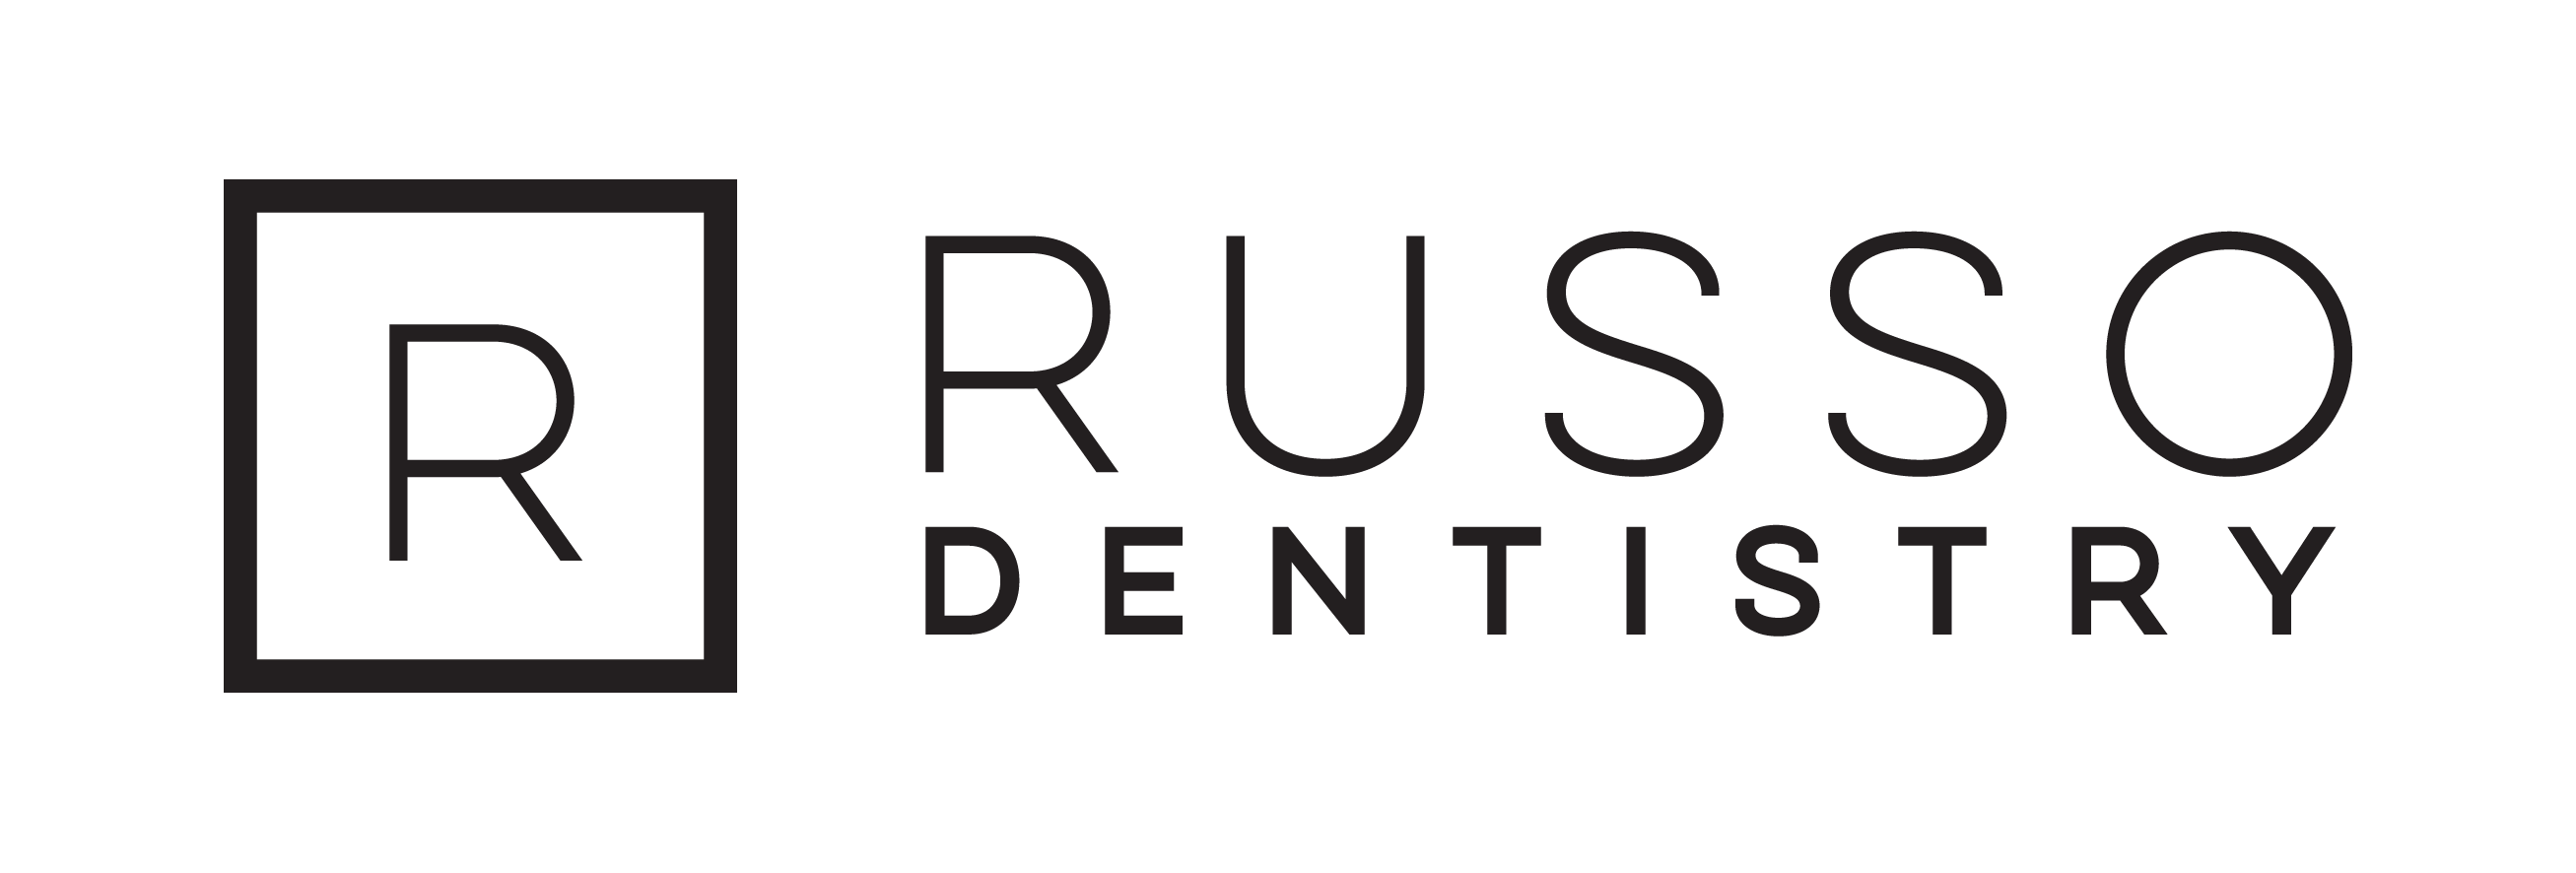 Three Things About Your Dentist | Russo Dentistry